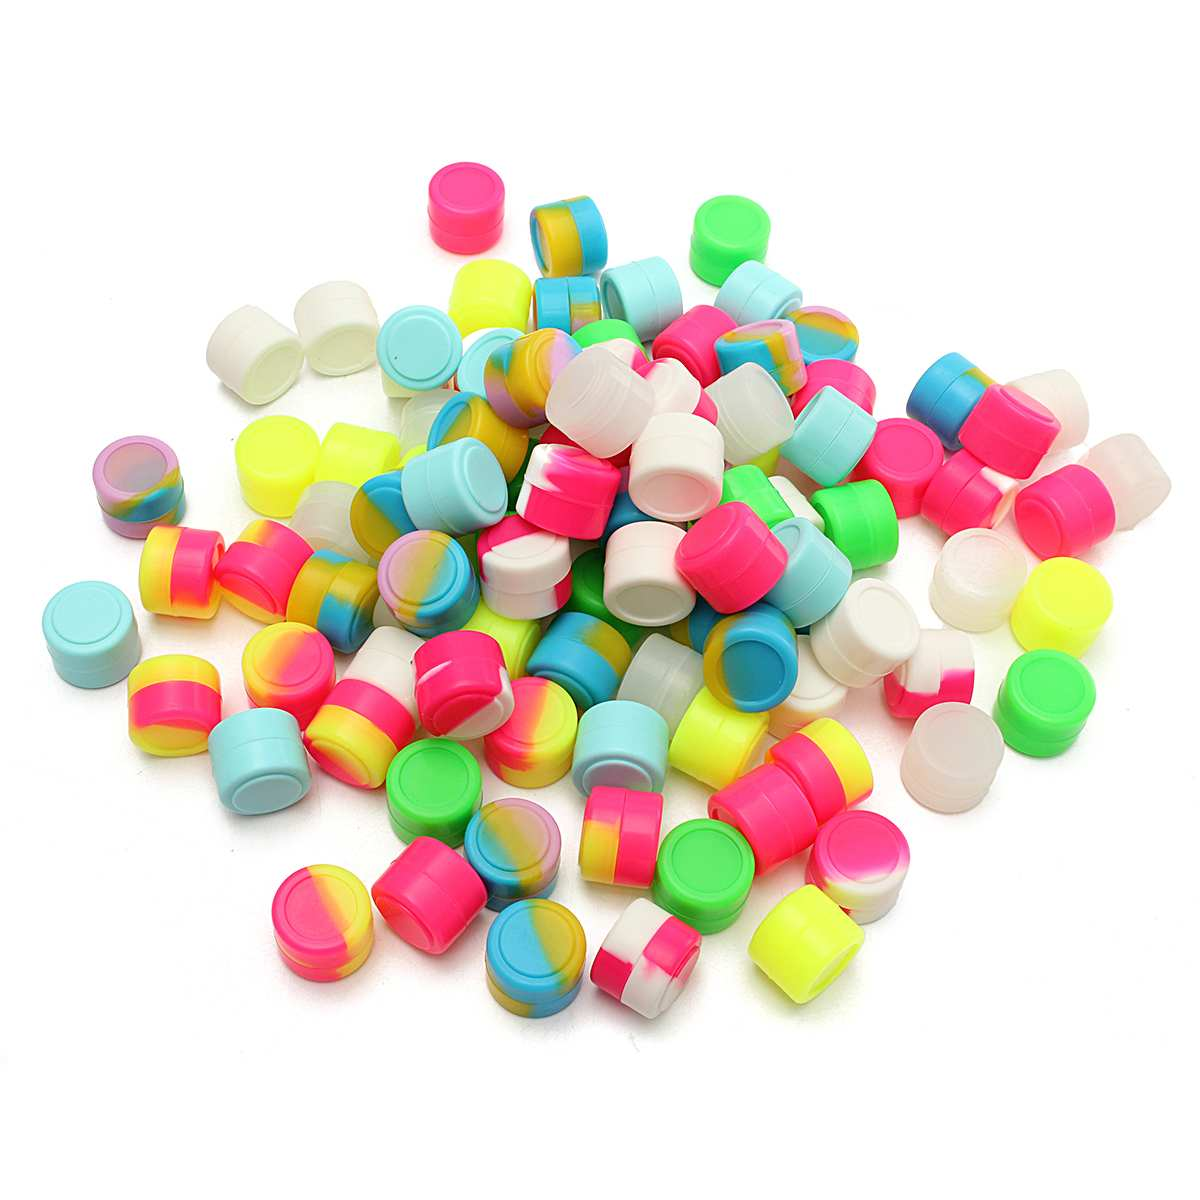 100Pcs 2ML Mini Round Non-stick Silicone Container For Wax Bho Oil Butane Vaporizer Silicon Jars Dab Wax Container Wax Jars